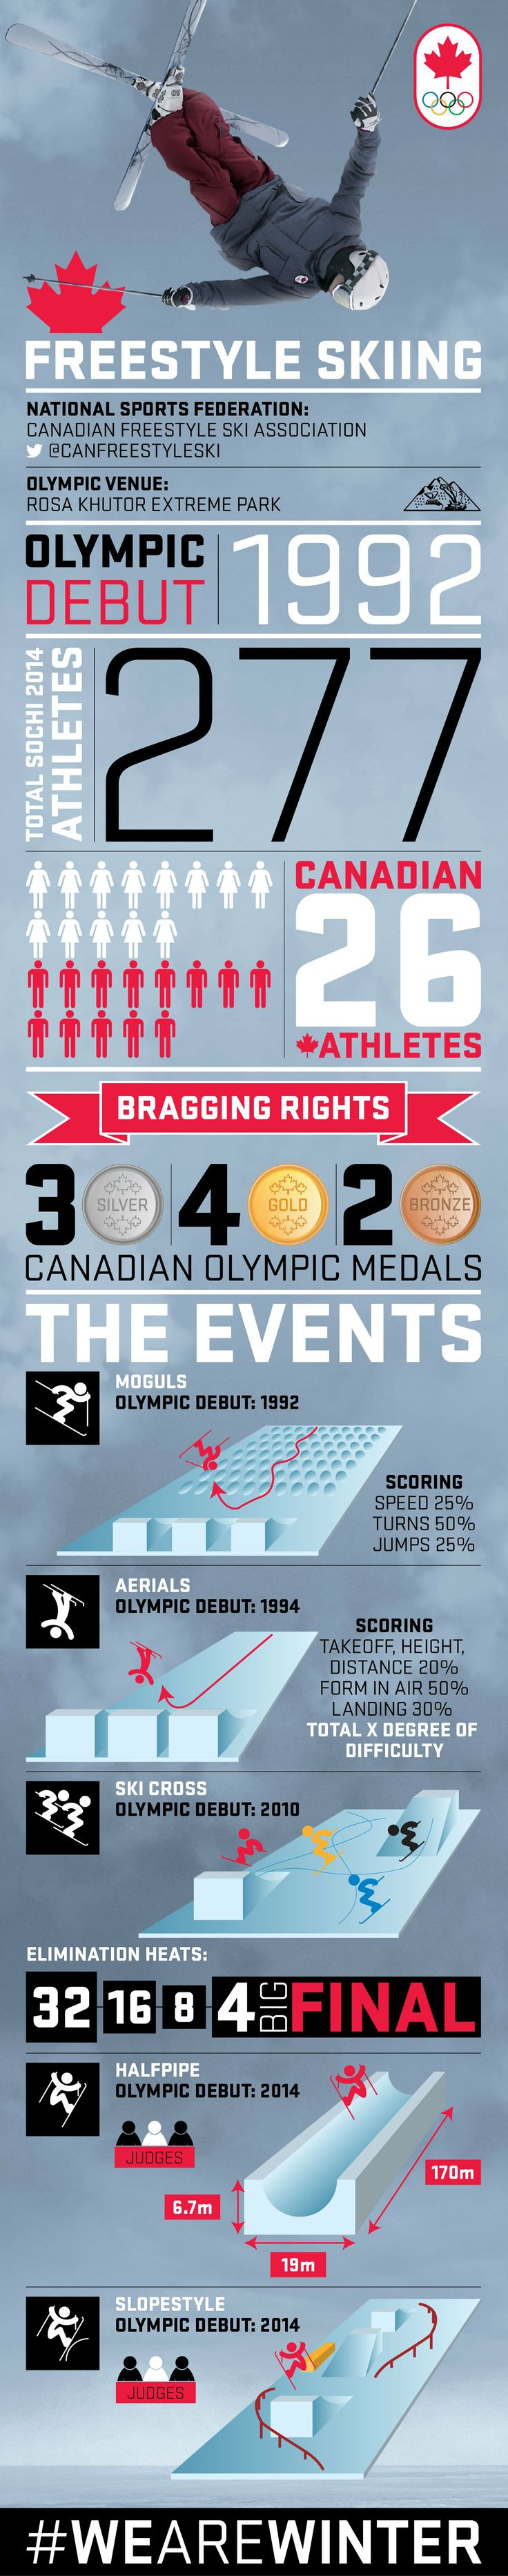 Sochi 2014 - Olympic Games - Freestyle Skiing - Infographic